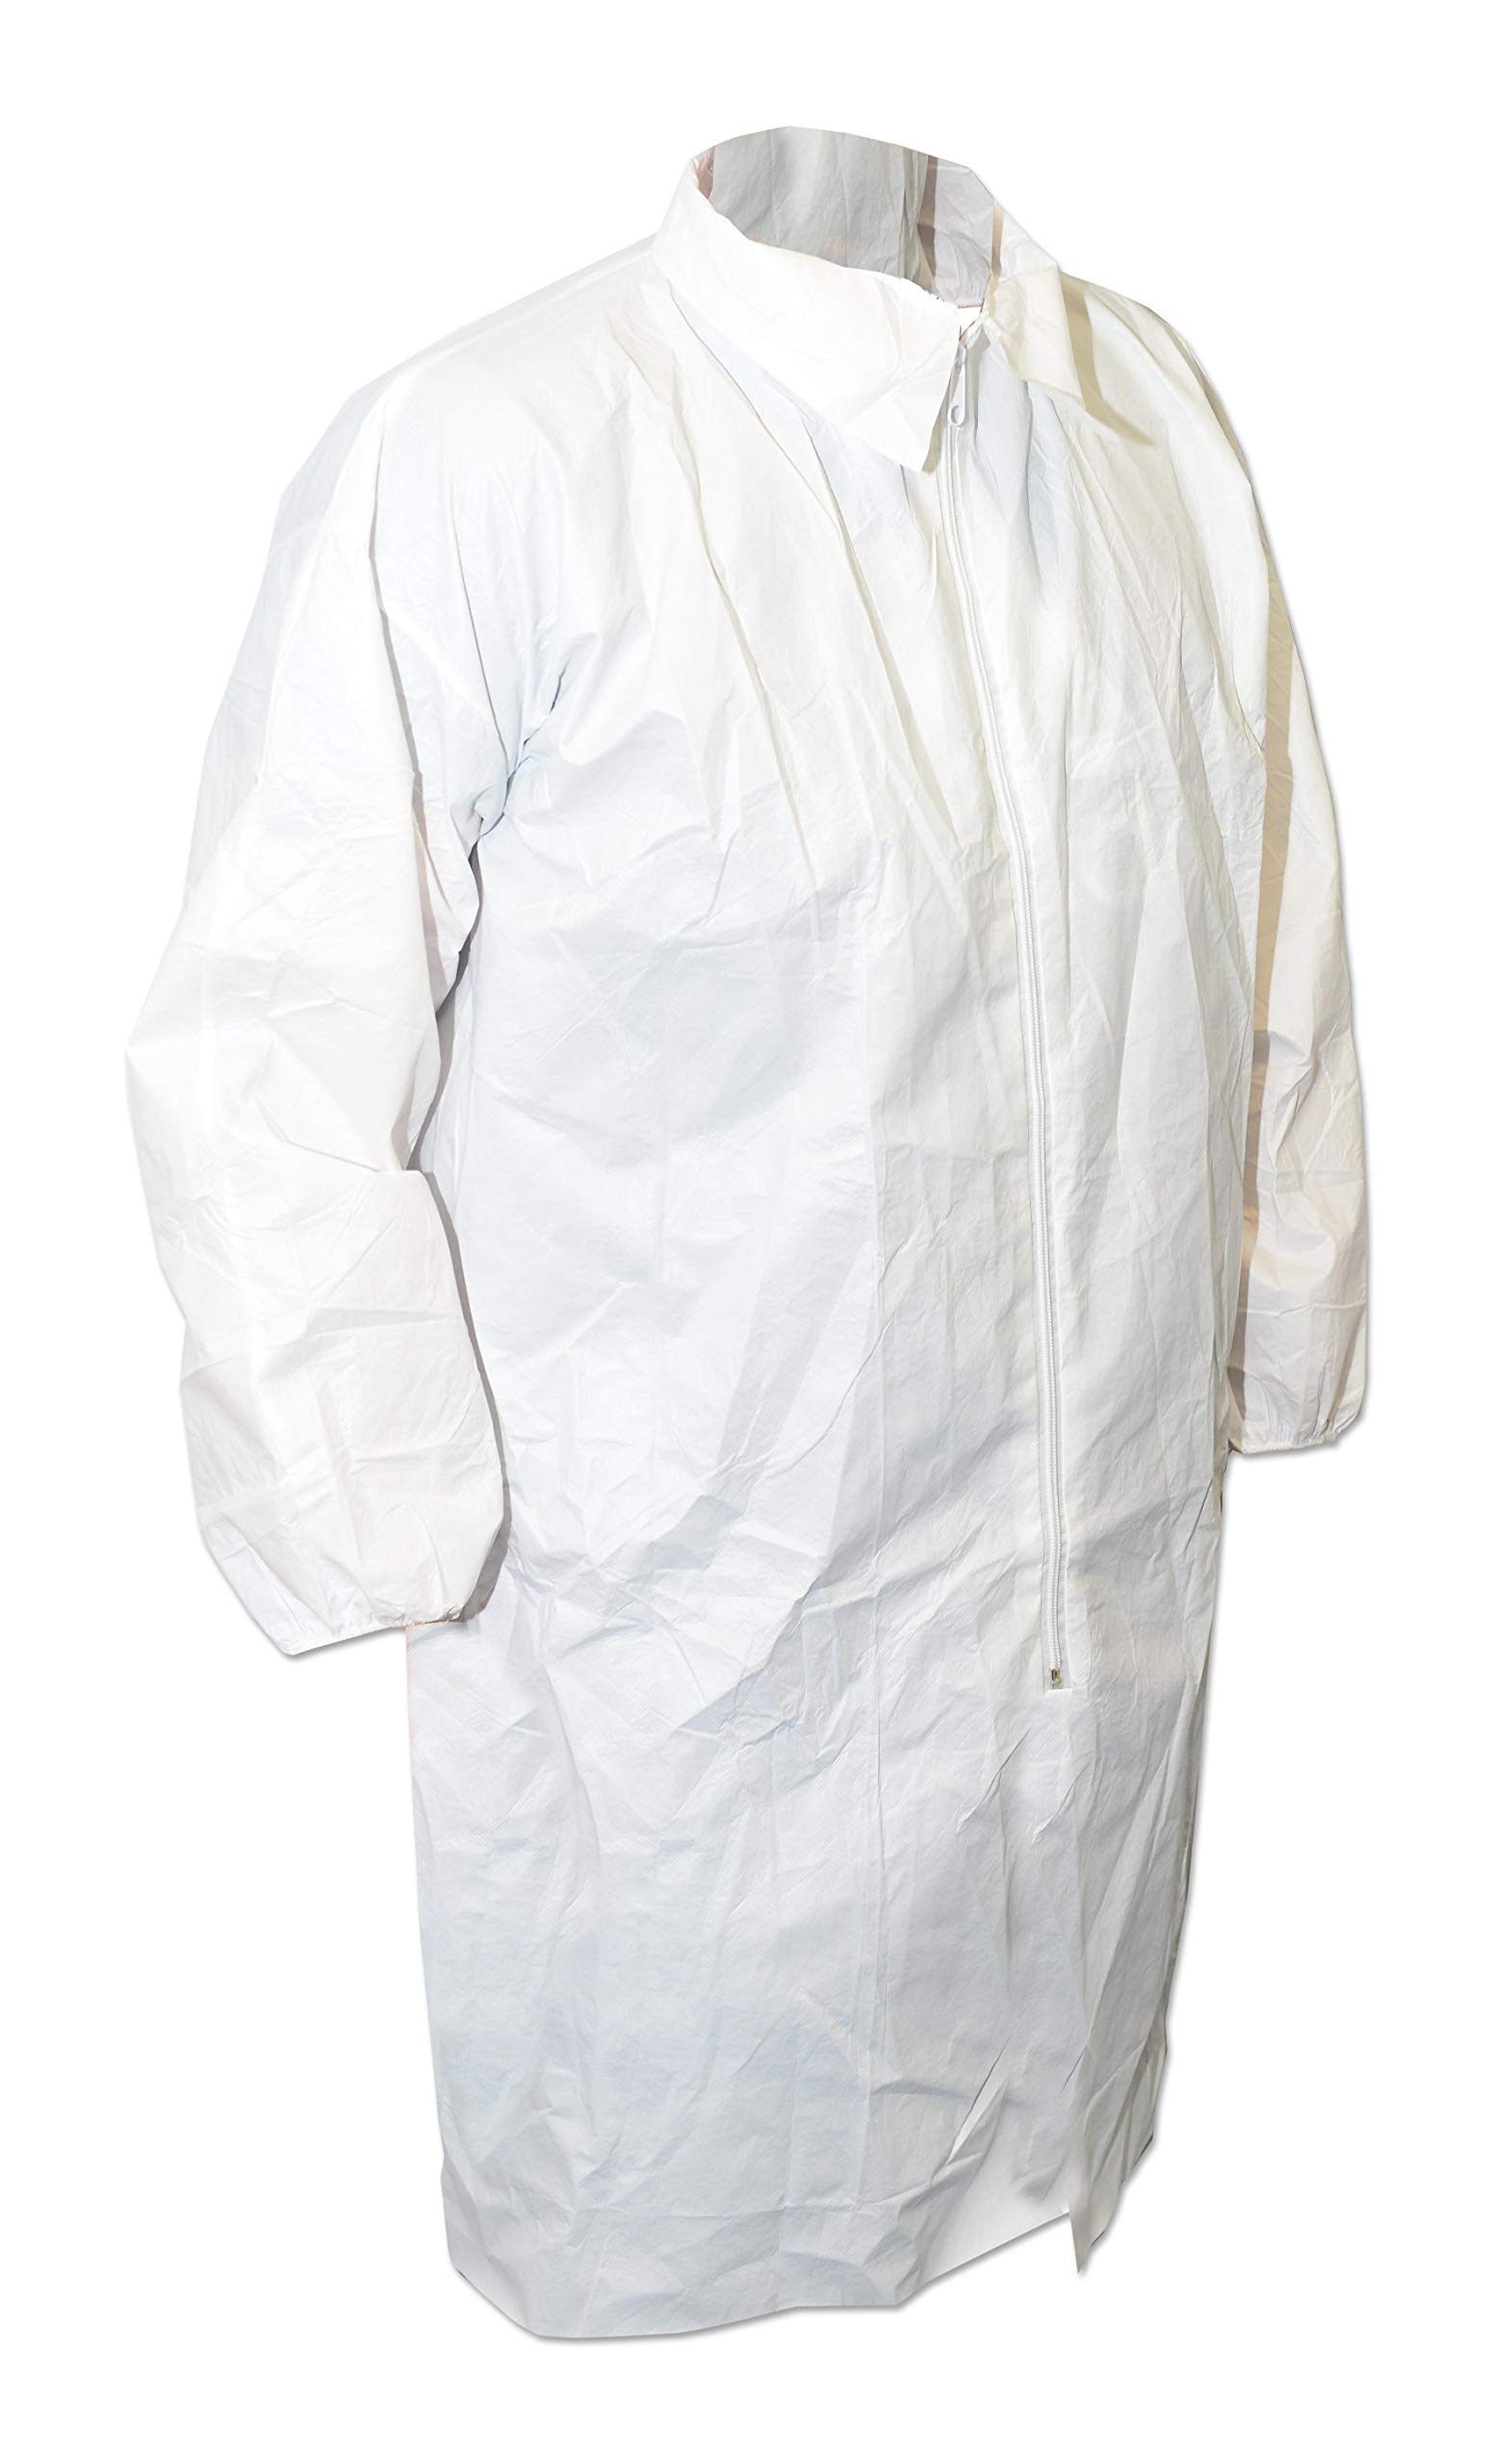 600-5003 - Lab Coat, Disposable, White, Polypropylene, Large, Cleanroom (600-5003) (Pack of 10)